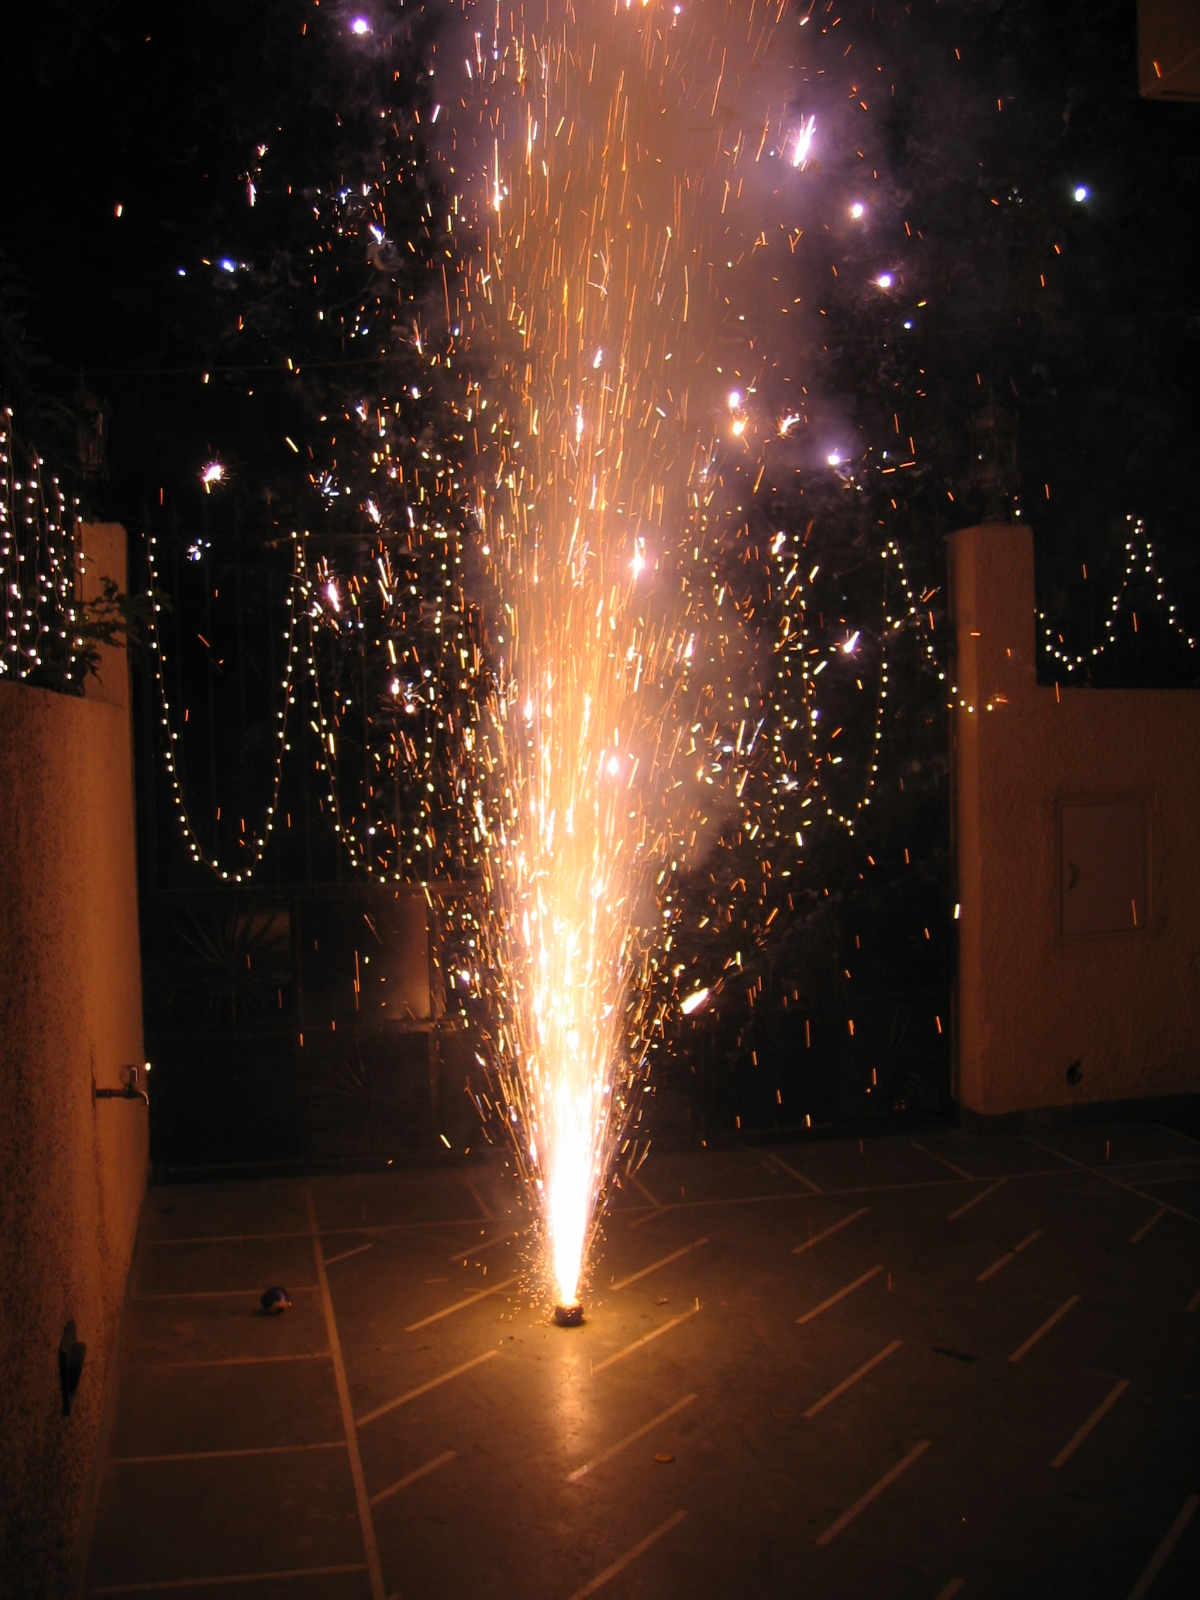 File:Diwali fireworks 3.jpg - Wikimedia Commons for Diwali Fireworks Wallpapers  58cpg